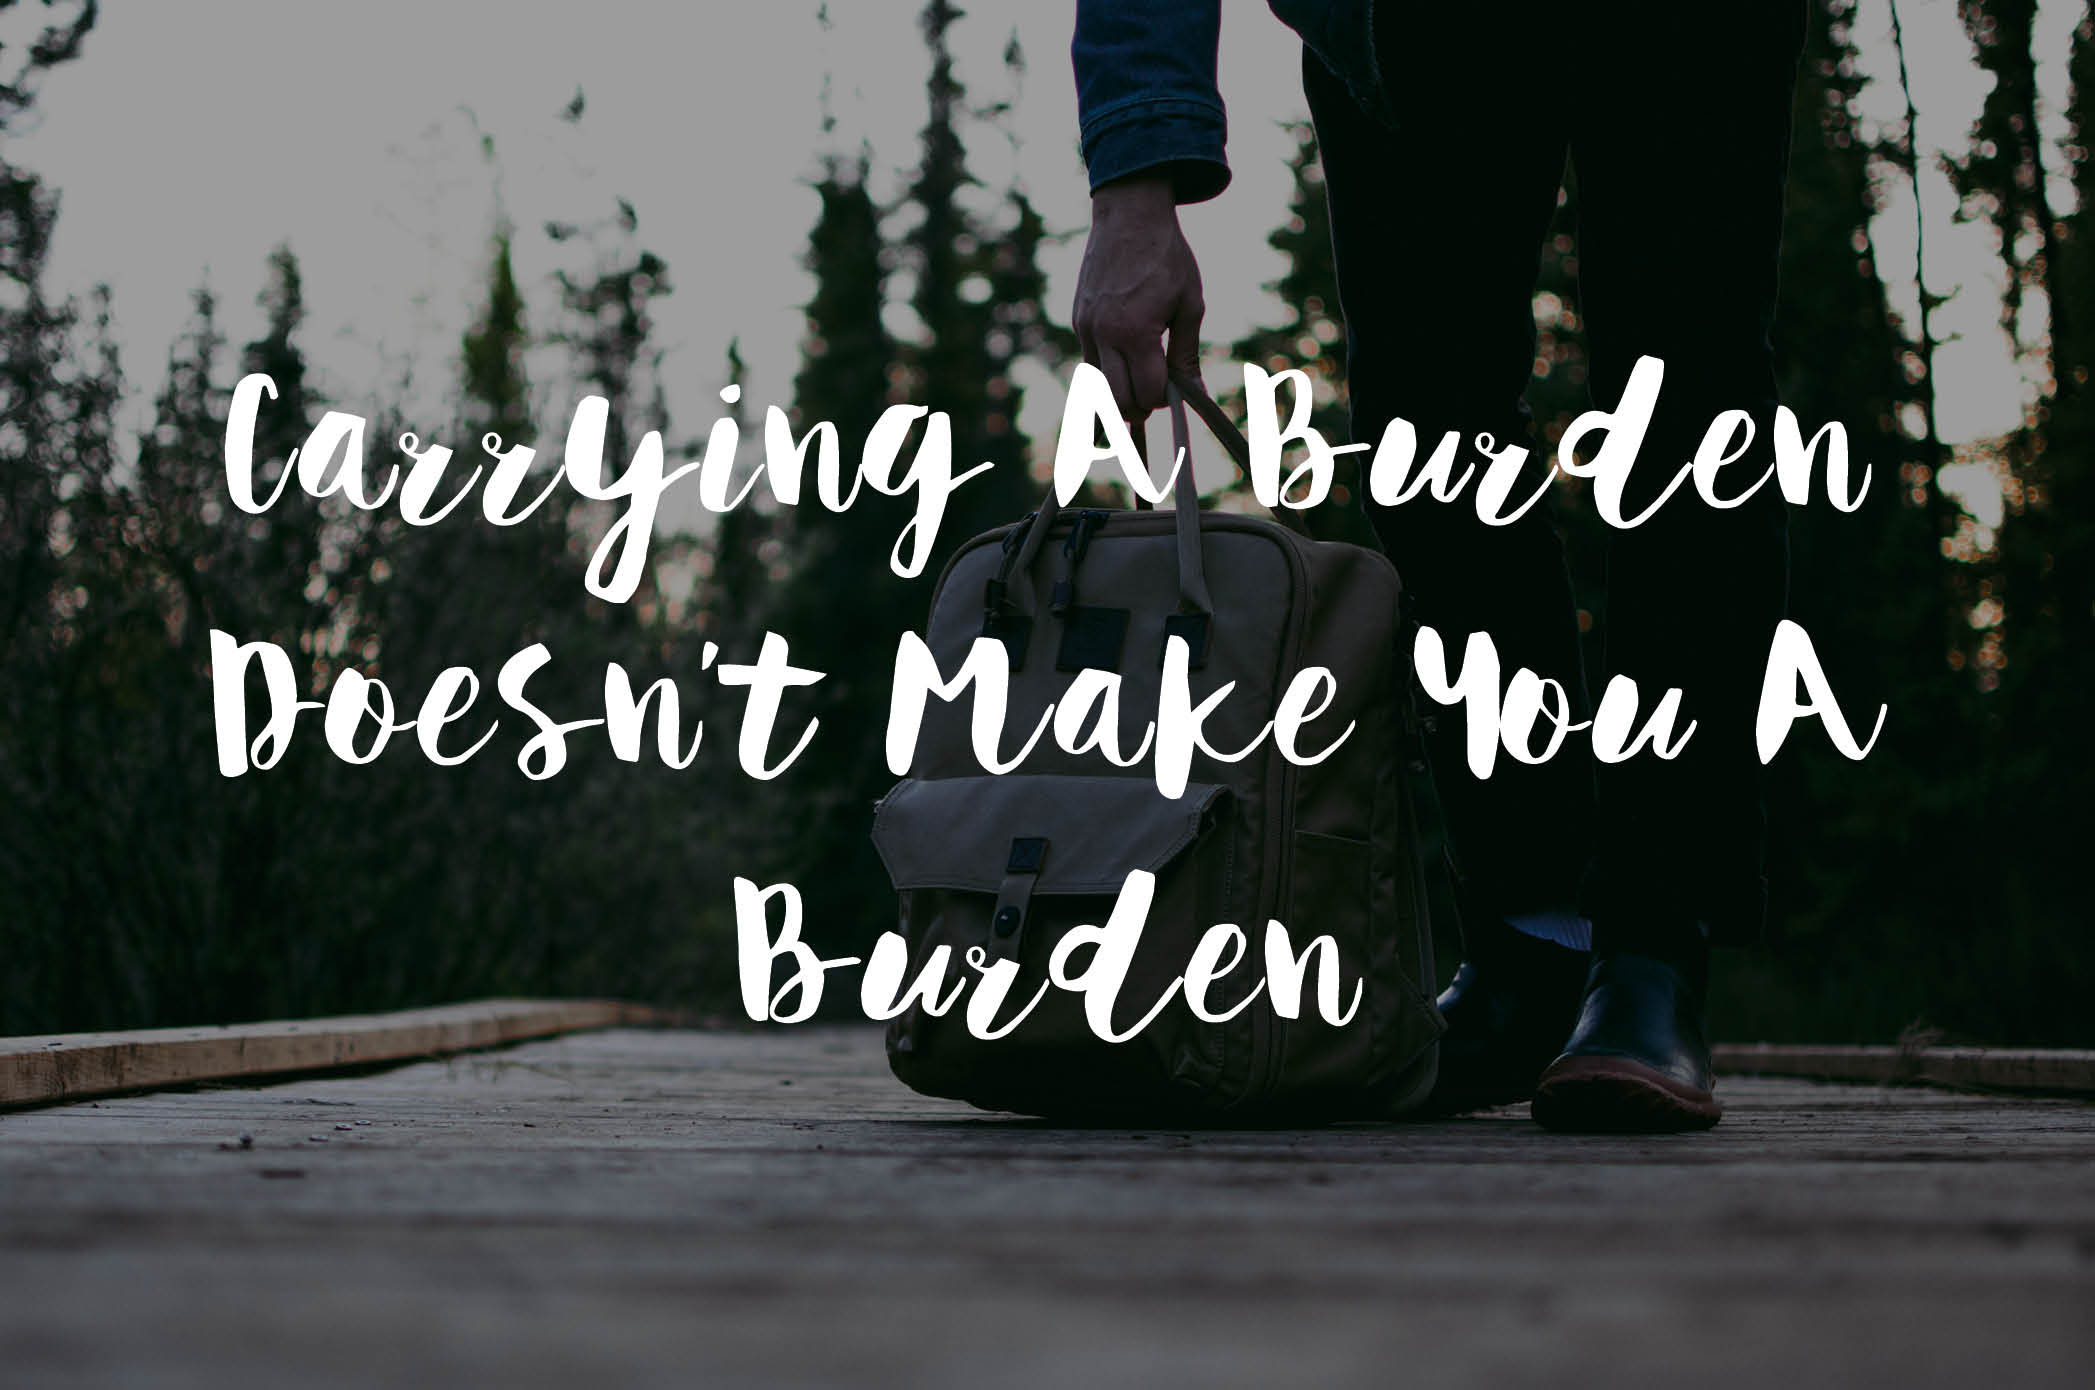 carrying a burden doesn't make you a burden